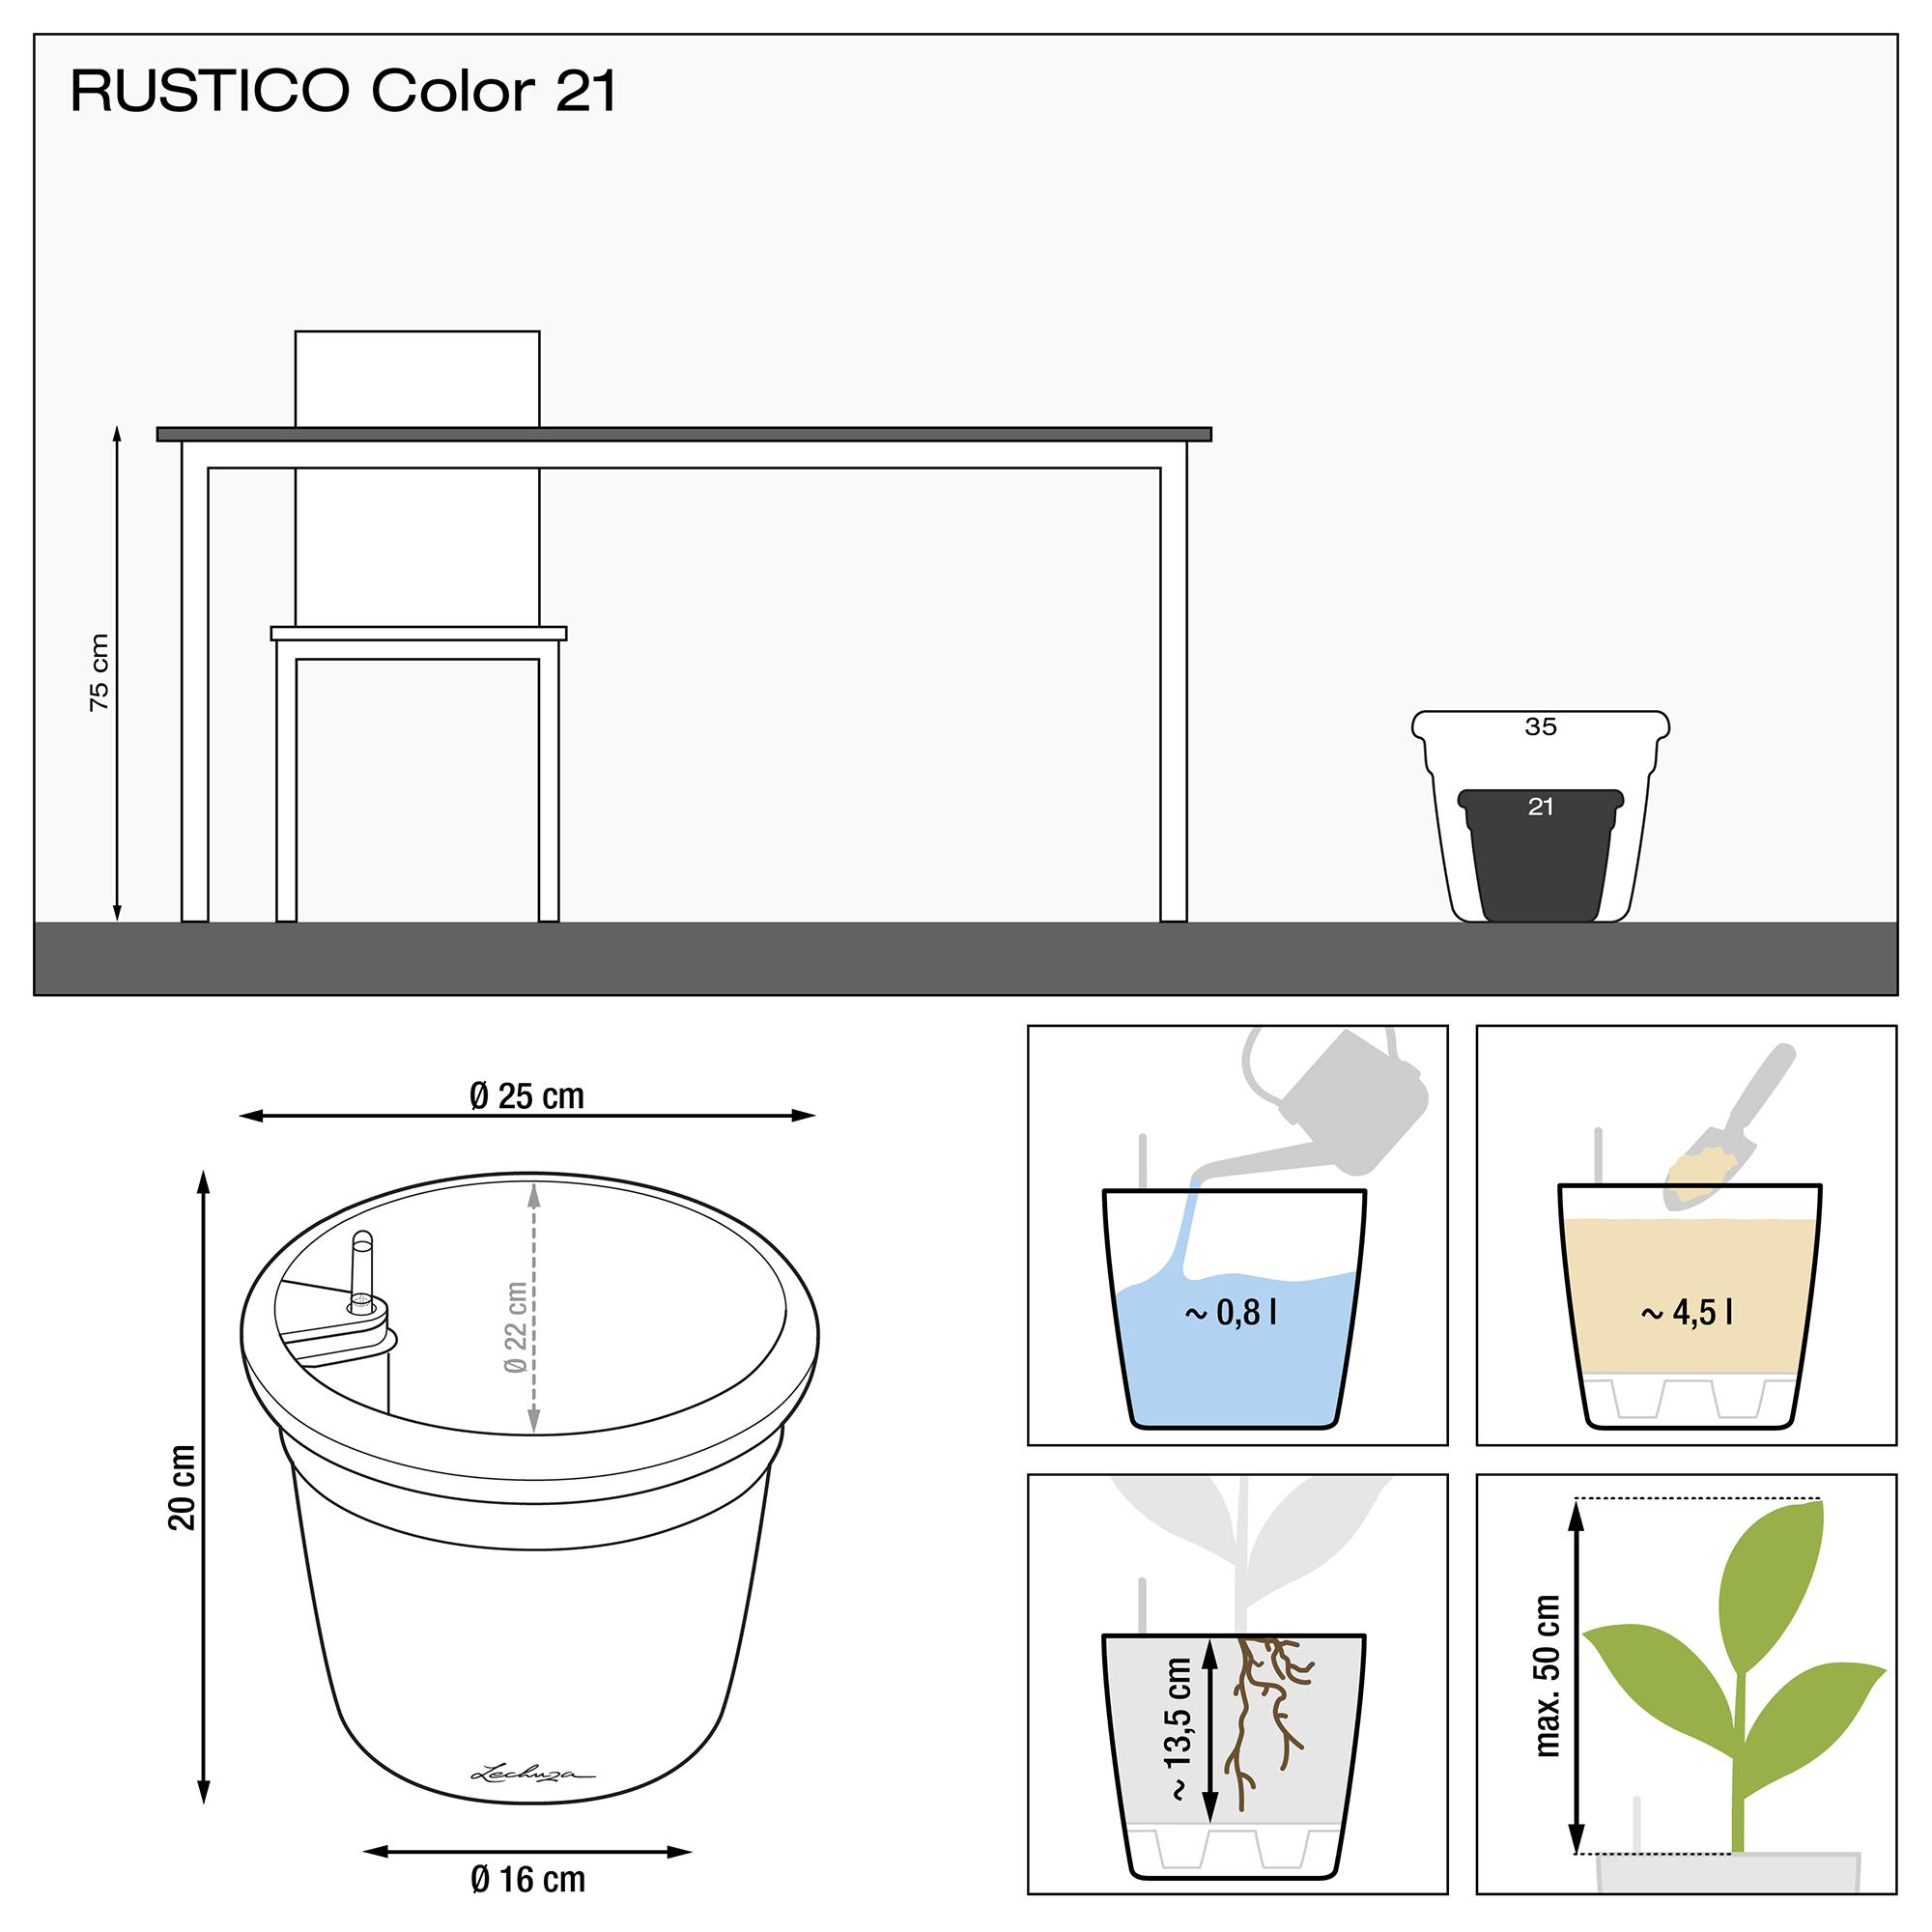 le_rustico-color21_product_addi_nz